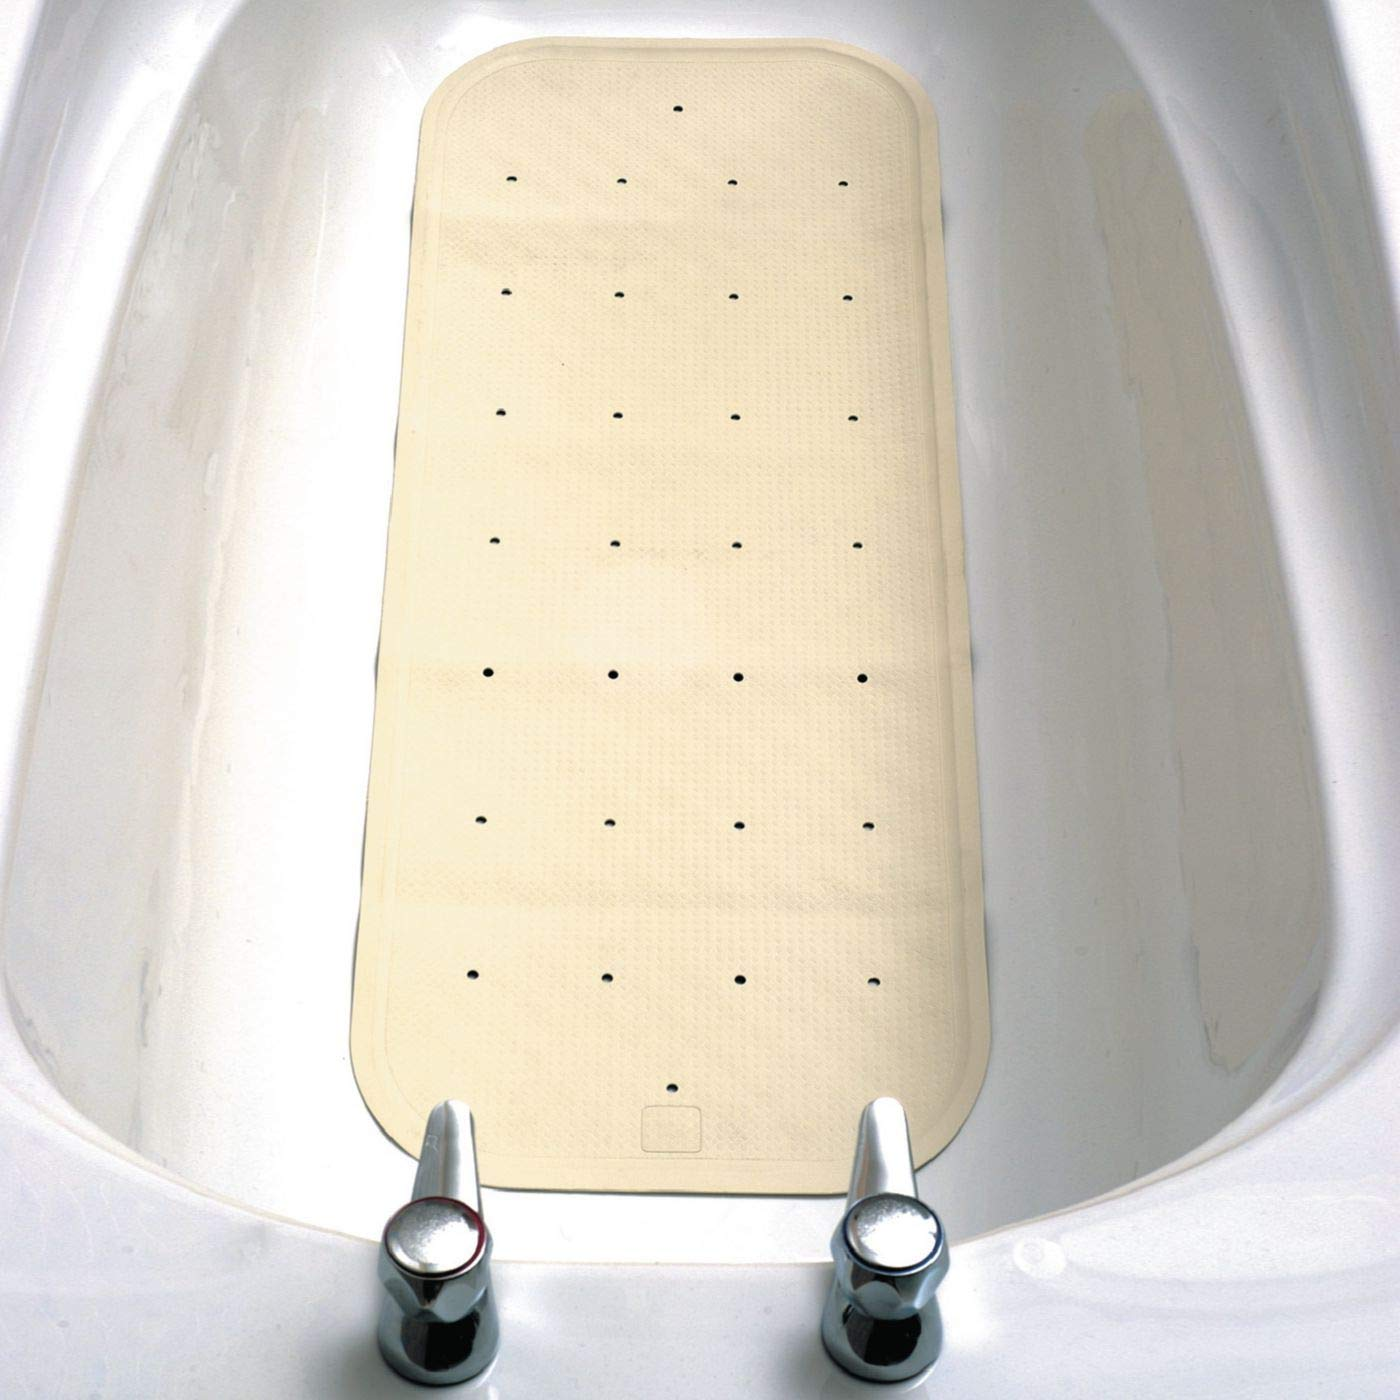 standard or Sit Shower Mat Bathtub and Shower Mat Non-Slip Shower Pad with Drainage Holes Homecraft Extra Long Bath Mat Made with Suction Cups for Grip and Quality Rubber Perforated Shower Mat